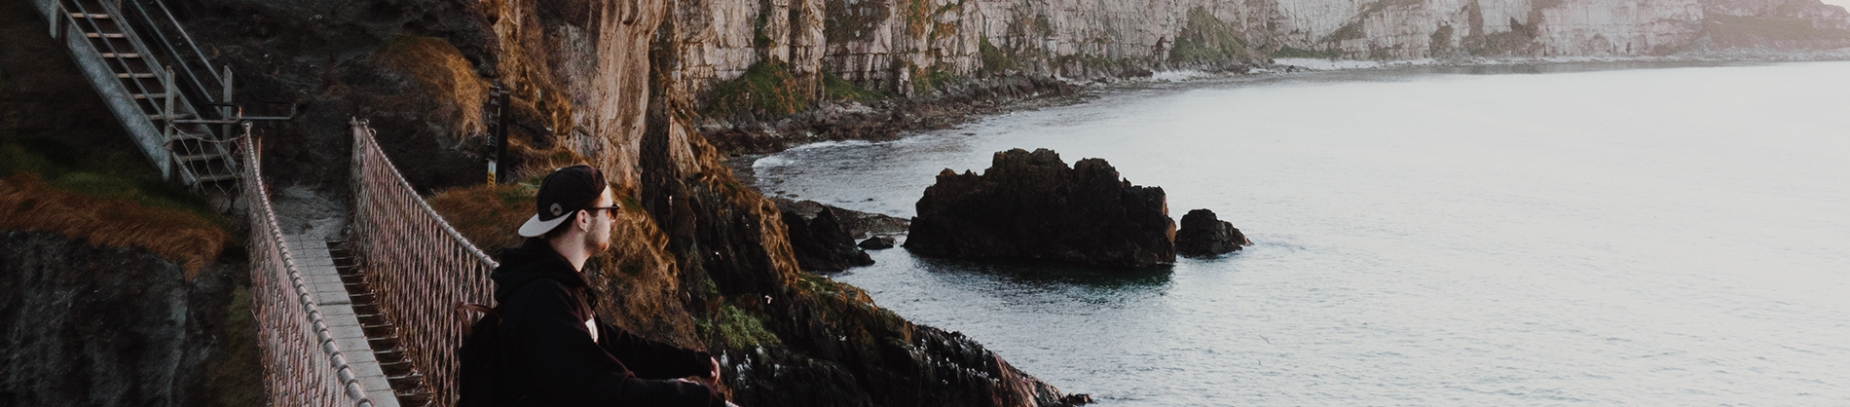 A guy stood on a rope bridge looking over the ocean